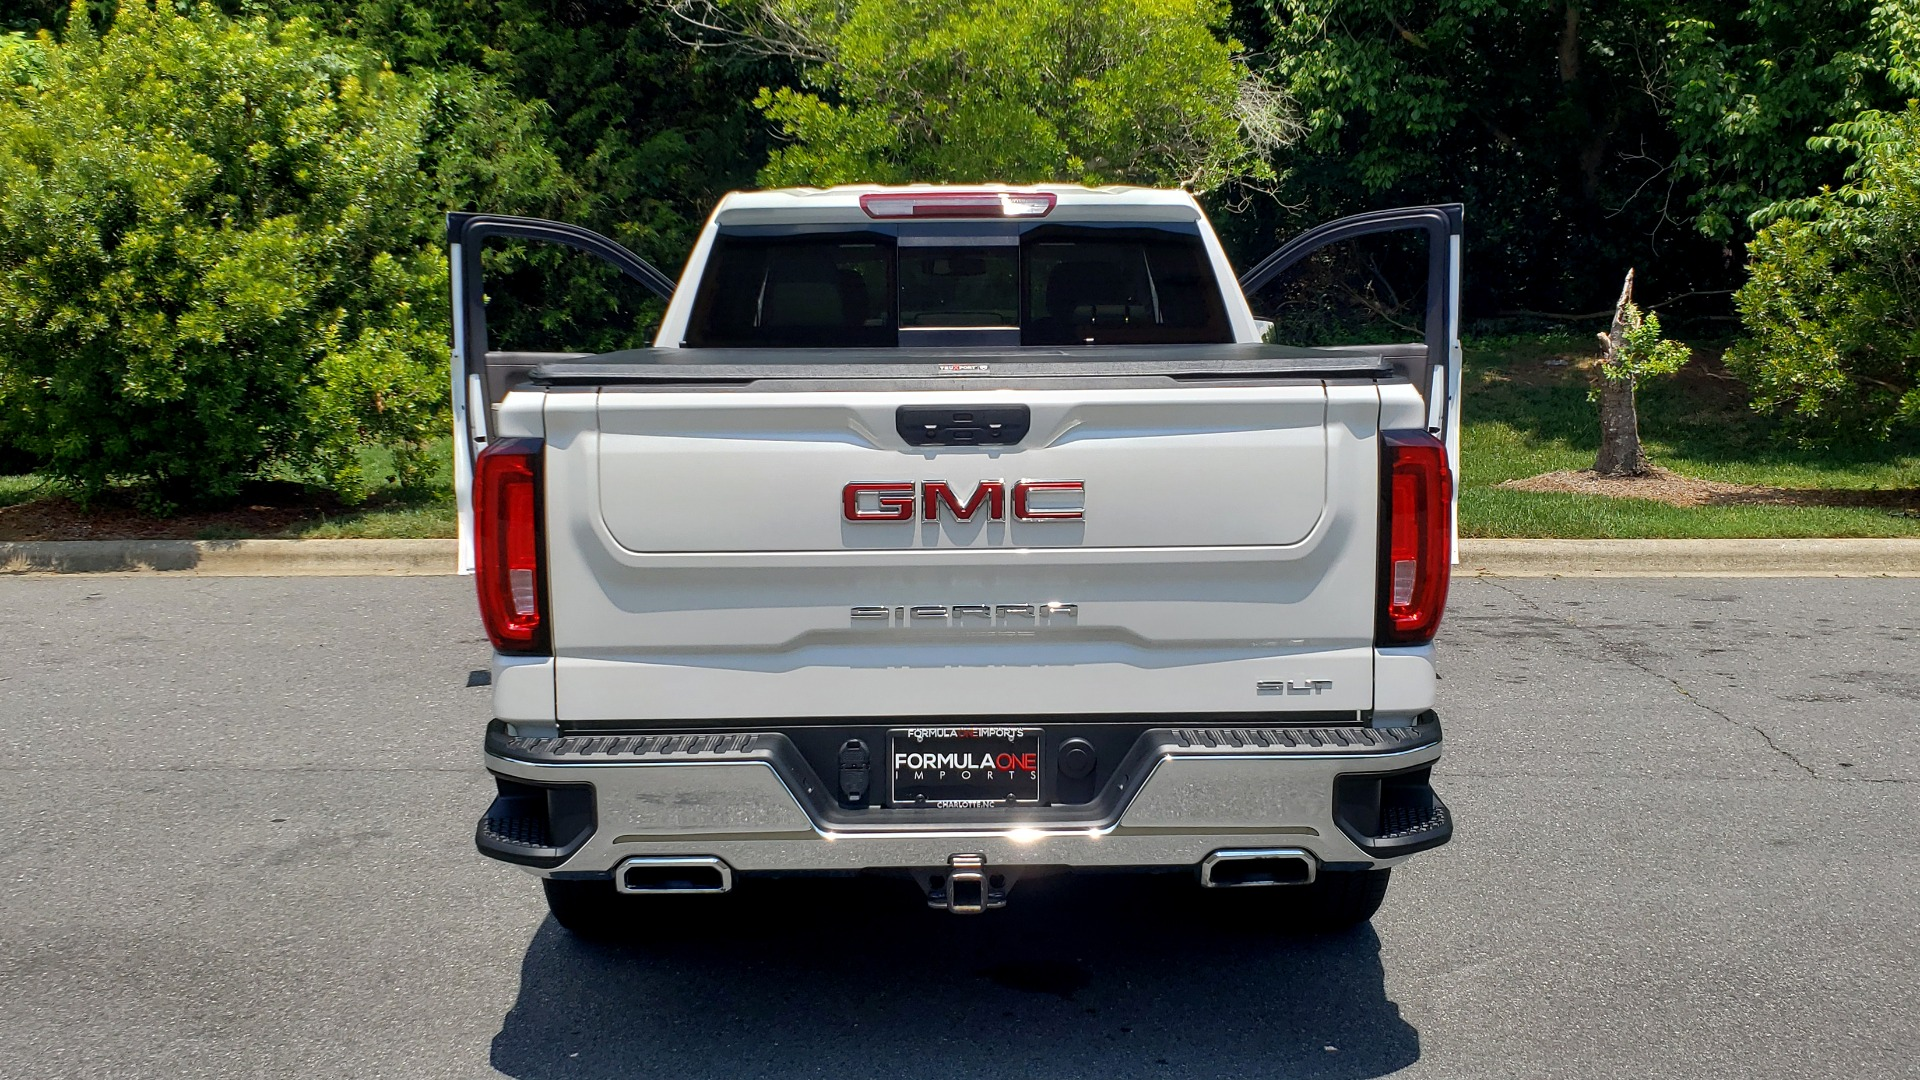 Used 2019 GMC SIERRA 1500 SLT 4WD CREWCAB / PREMIUM / 6.2L V8 / NAV / SUNROOF / VENT SEATS for sale Sold at Formula Imports in Charlotte NC 28227 31